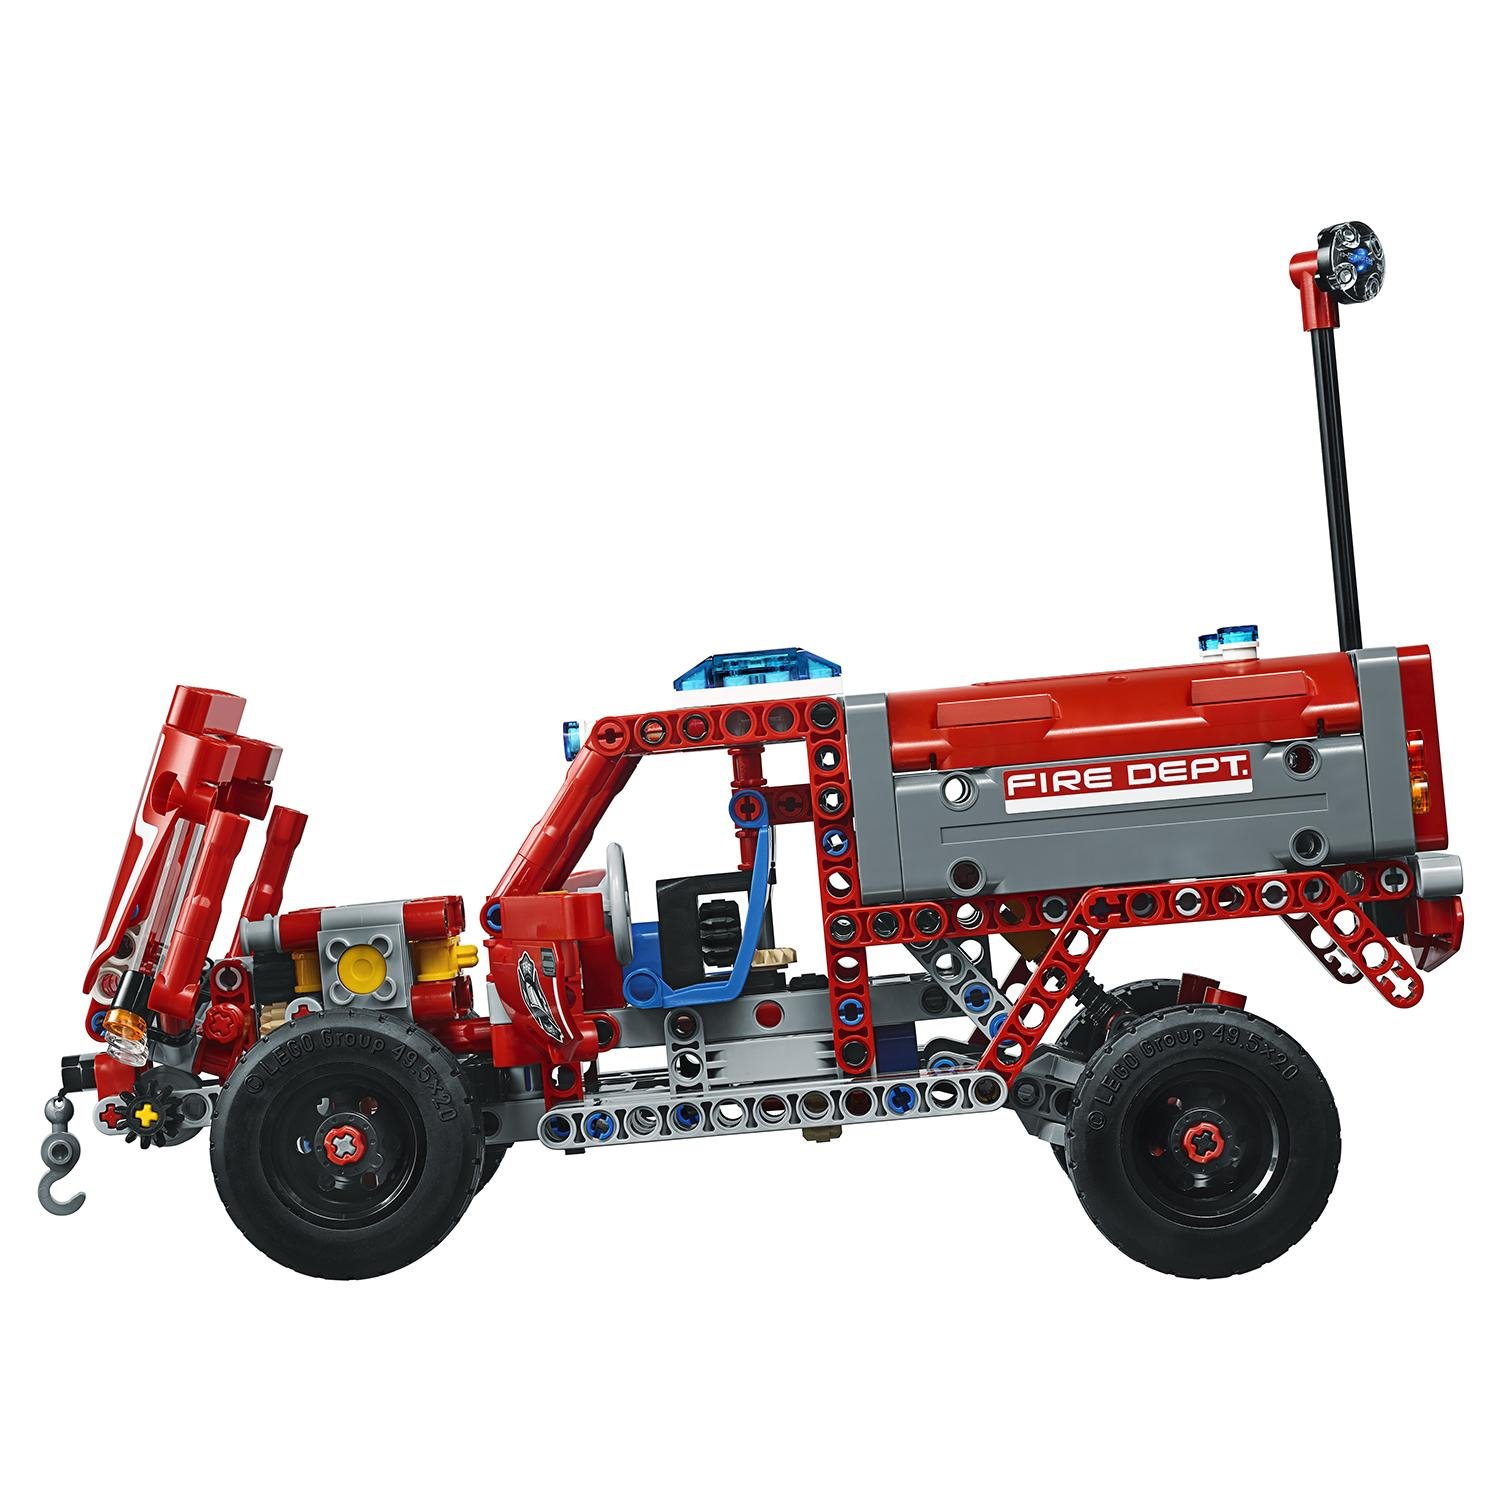 lego-technic-first-responder-42075-magico.md